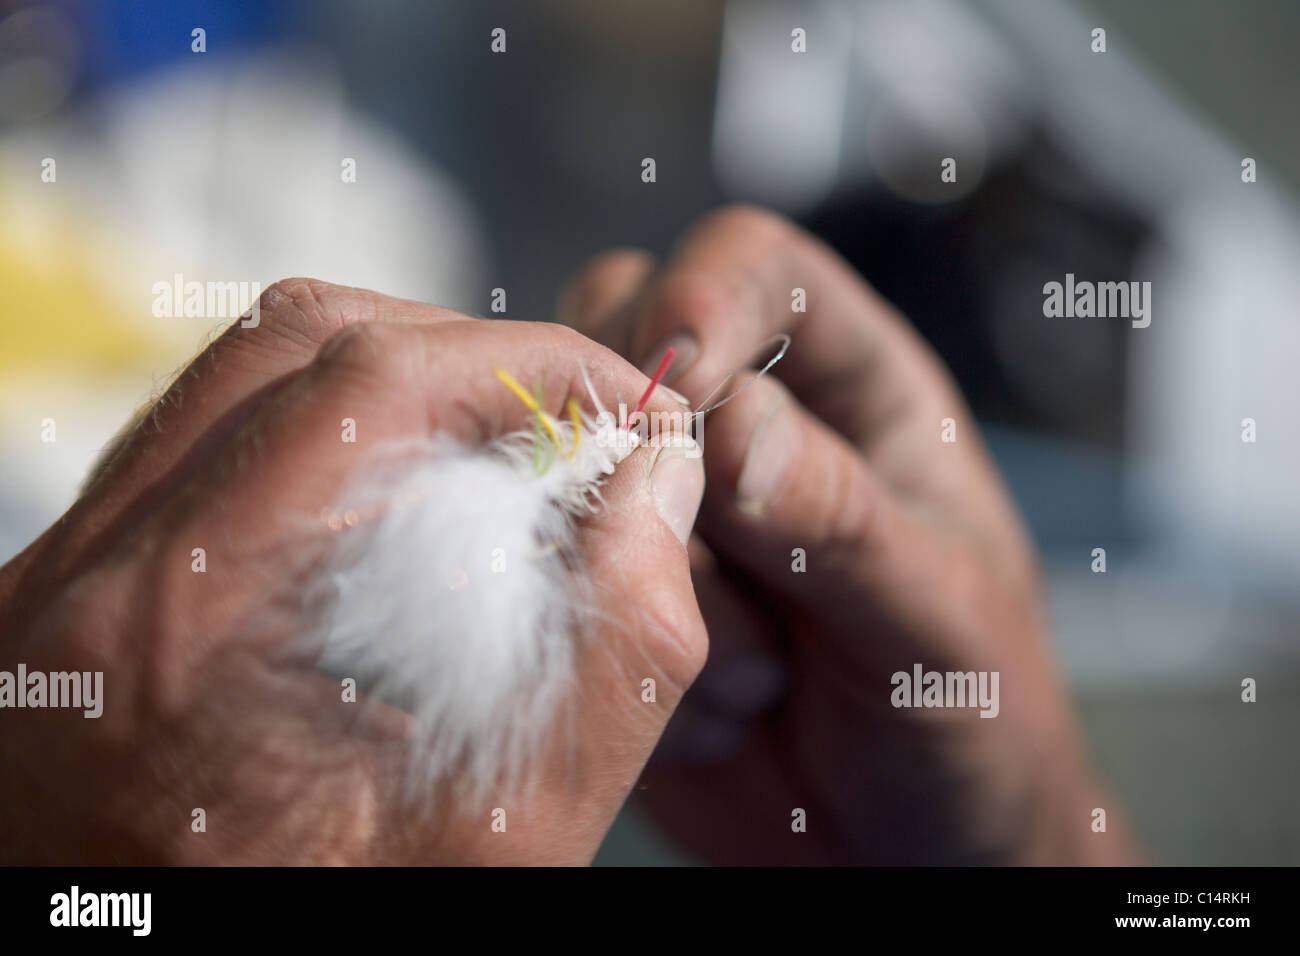 A close-up view of hands tying a fly to fishing line. Stock Photo